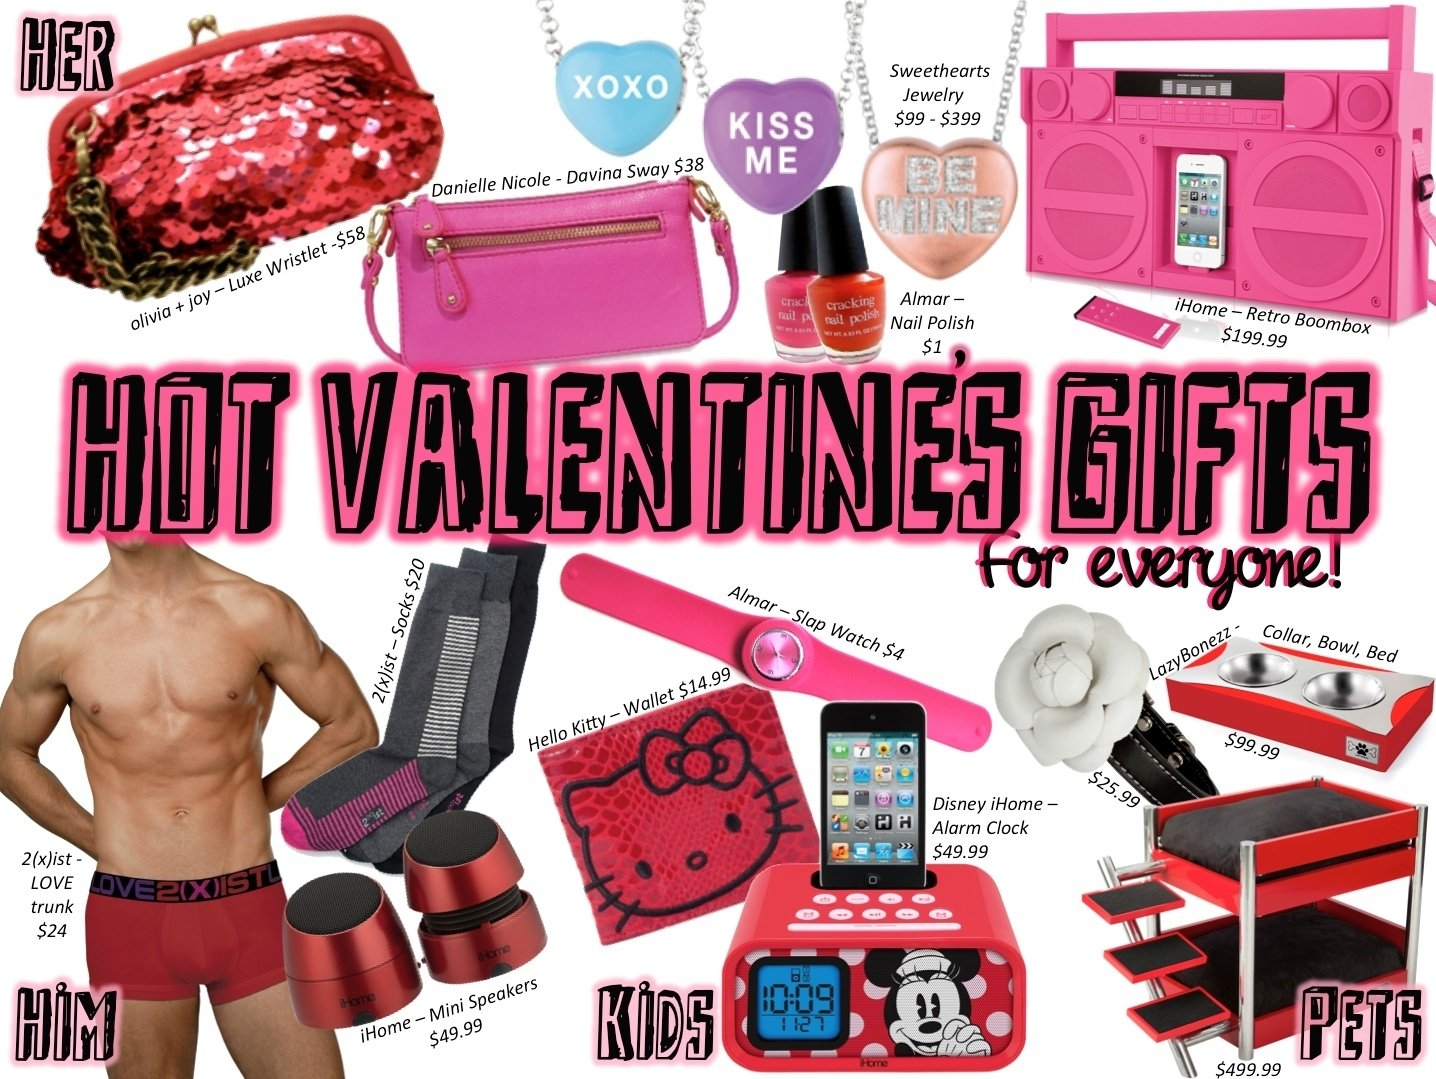 10 Most Recommended Great Valentines Day Ideas For Him best valentines day gifts for him startupcorner co 2020